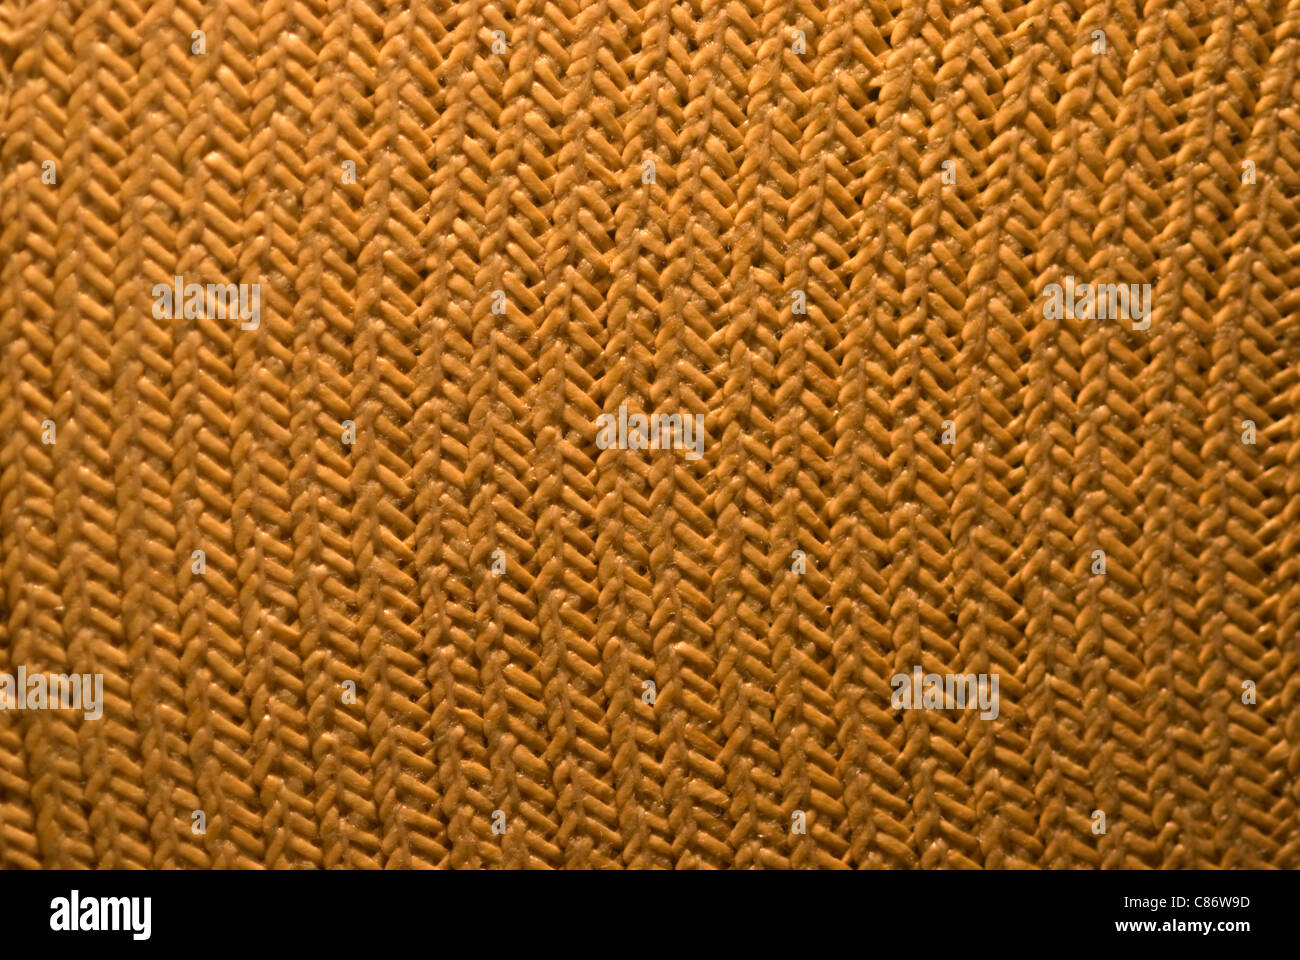 Weave Straw Hat Stock Photos Weave Straw Hat Stock Images Alamy